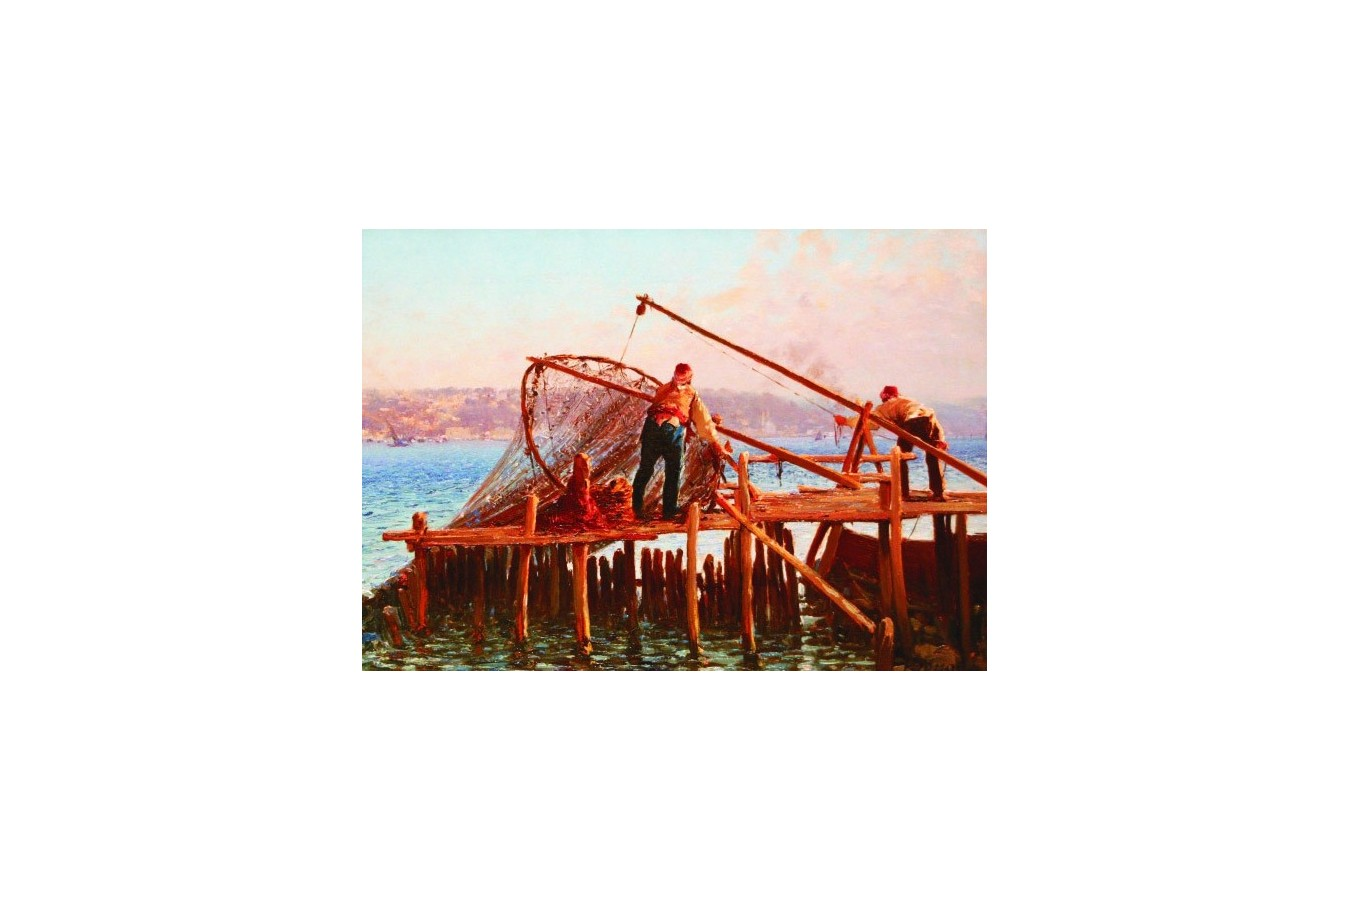 Puzzle Gold Puzzle - Fausto Zonaro: Fishermen Bringing in the Catch, 1.000 piese (Gold-Puzzle-60829)